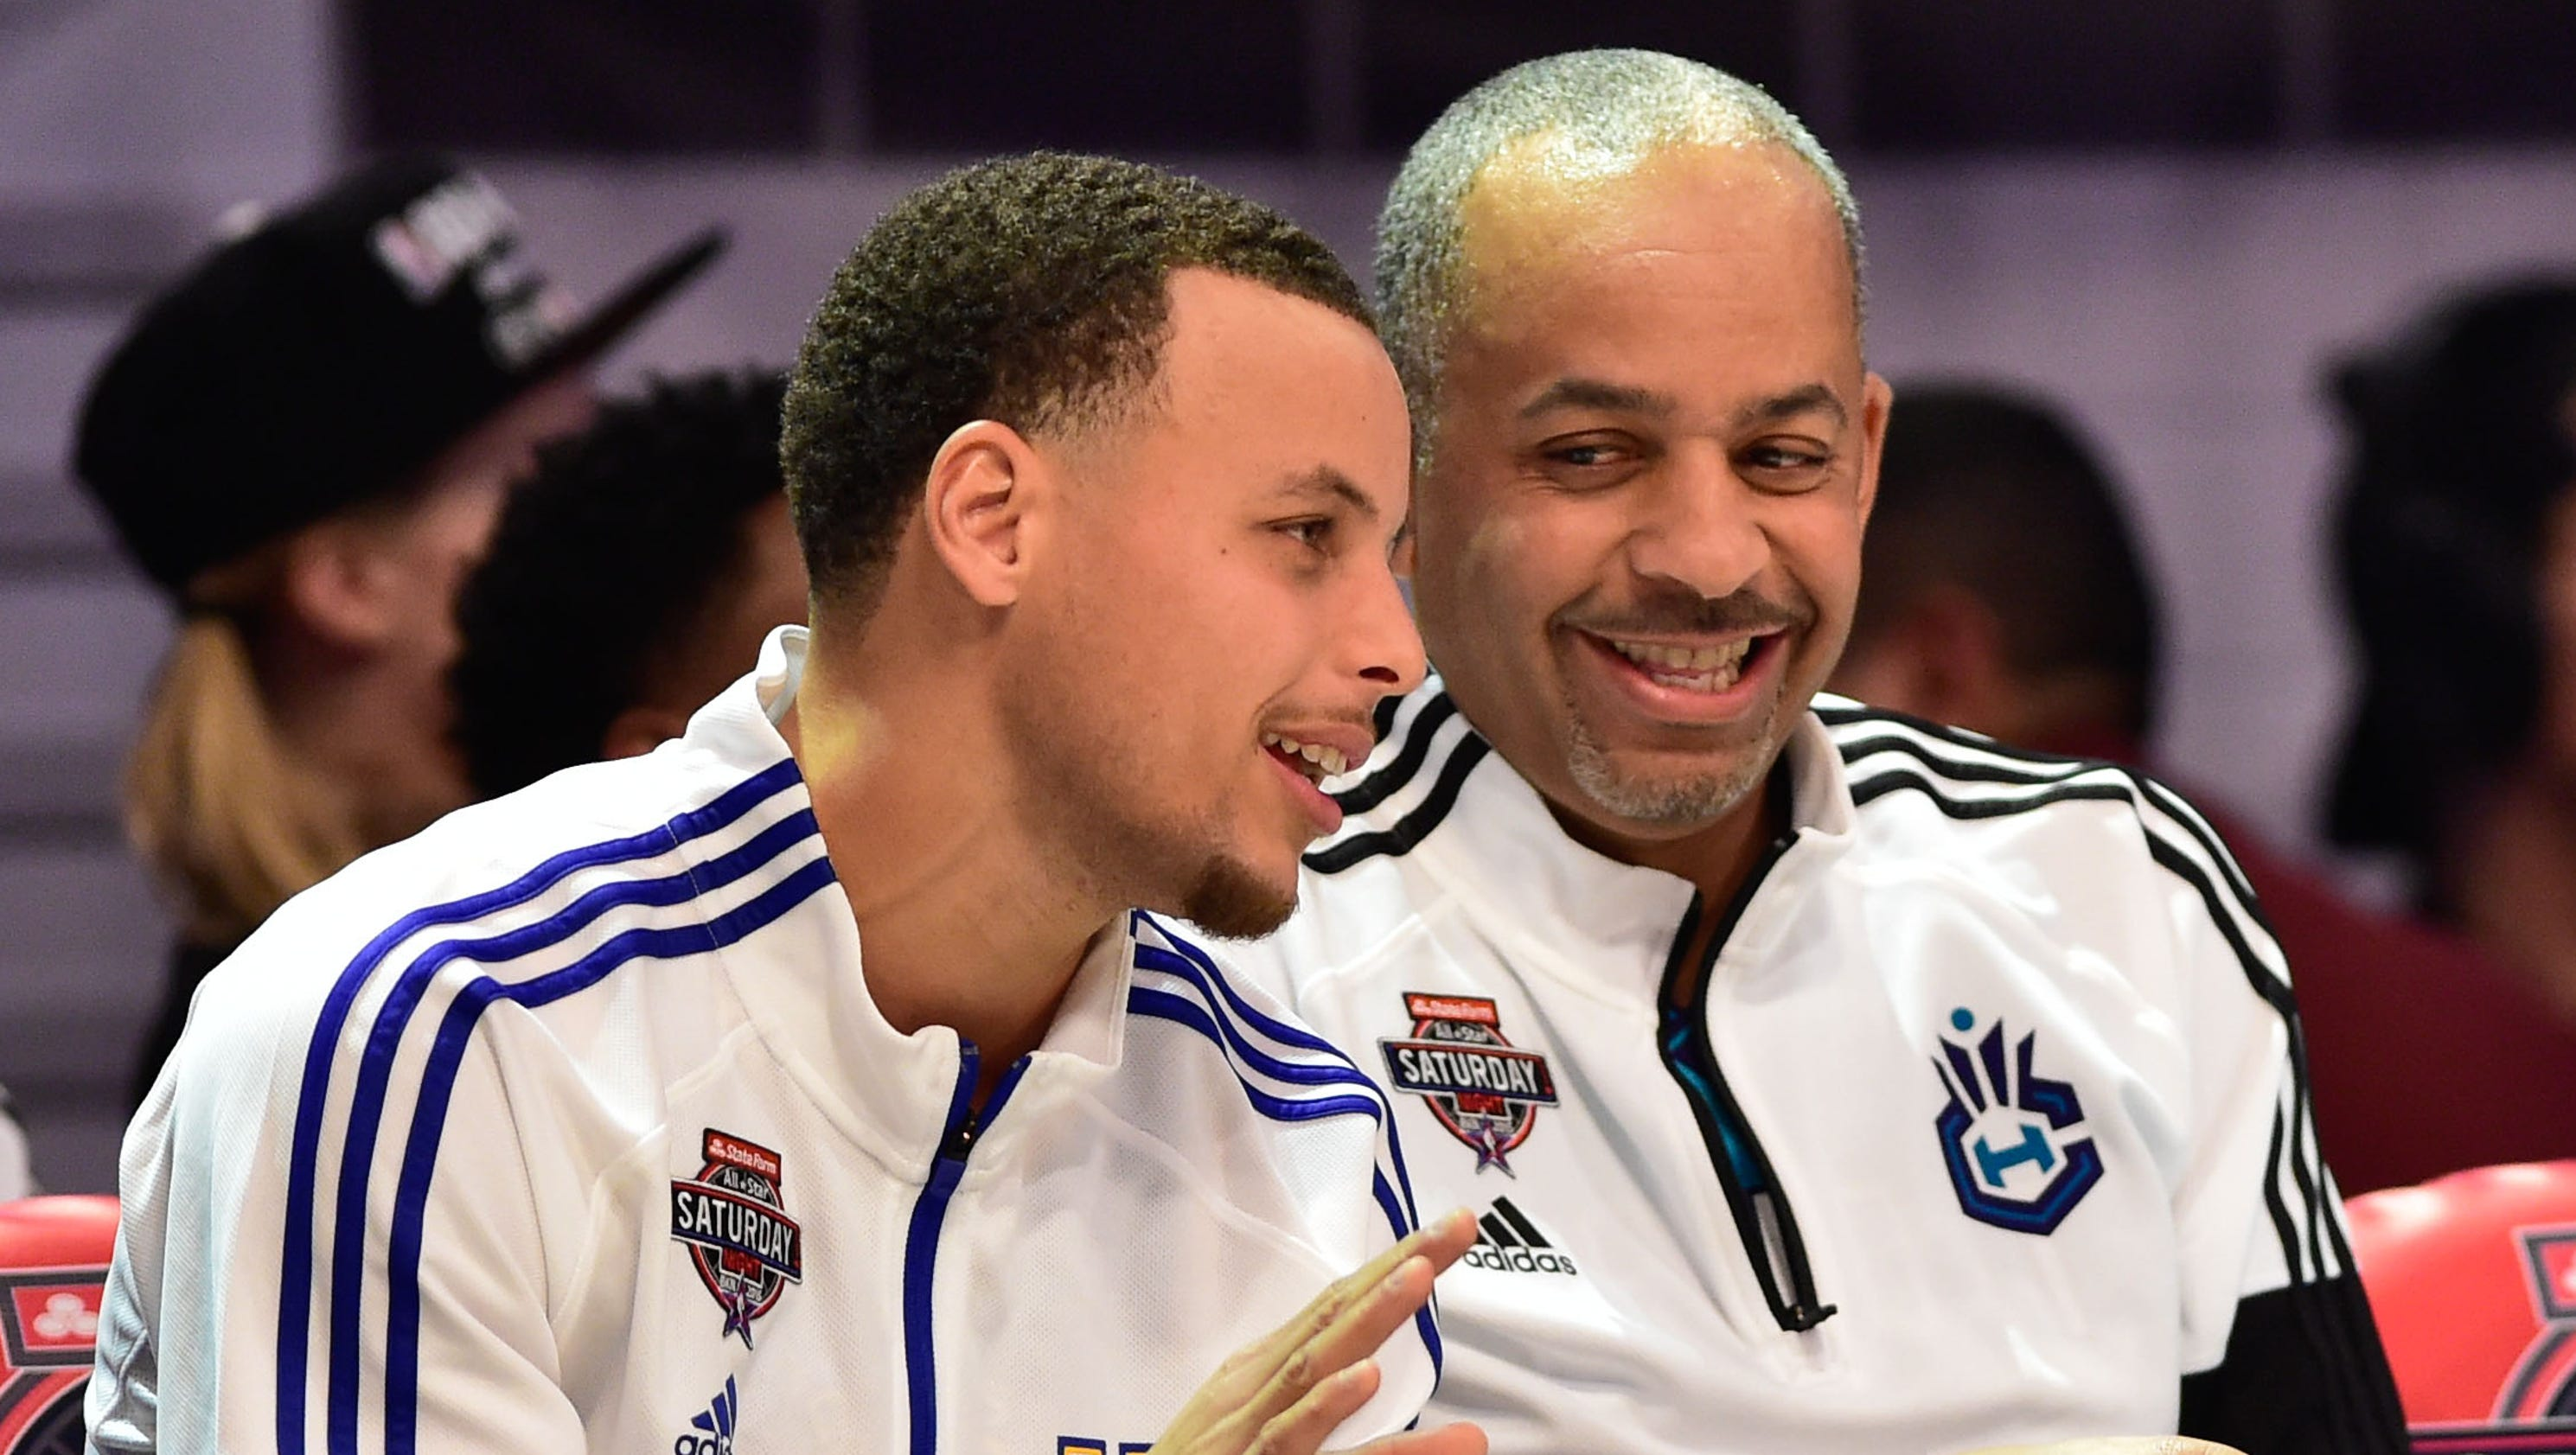 Stephen Curry wants to play in the NBA as long as his father Dell Curry